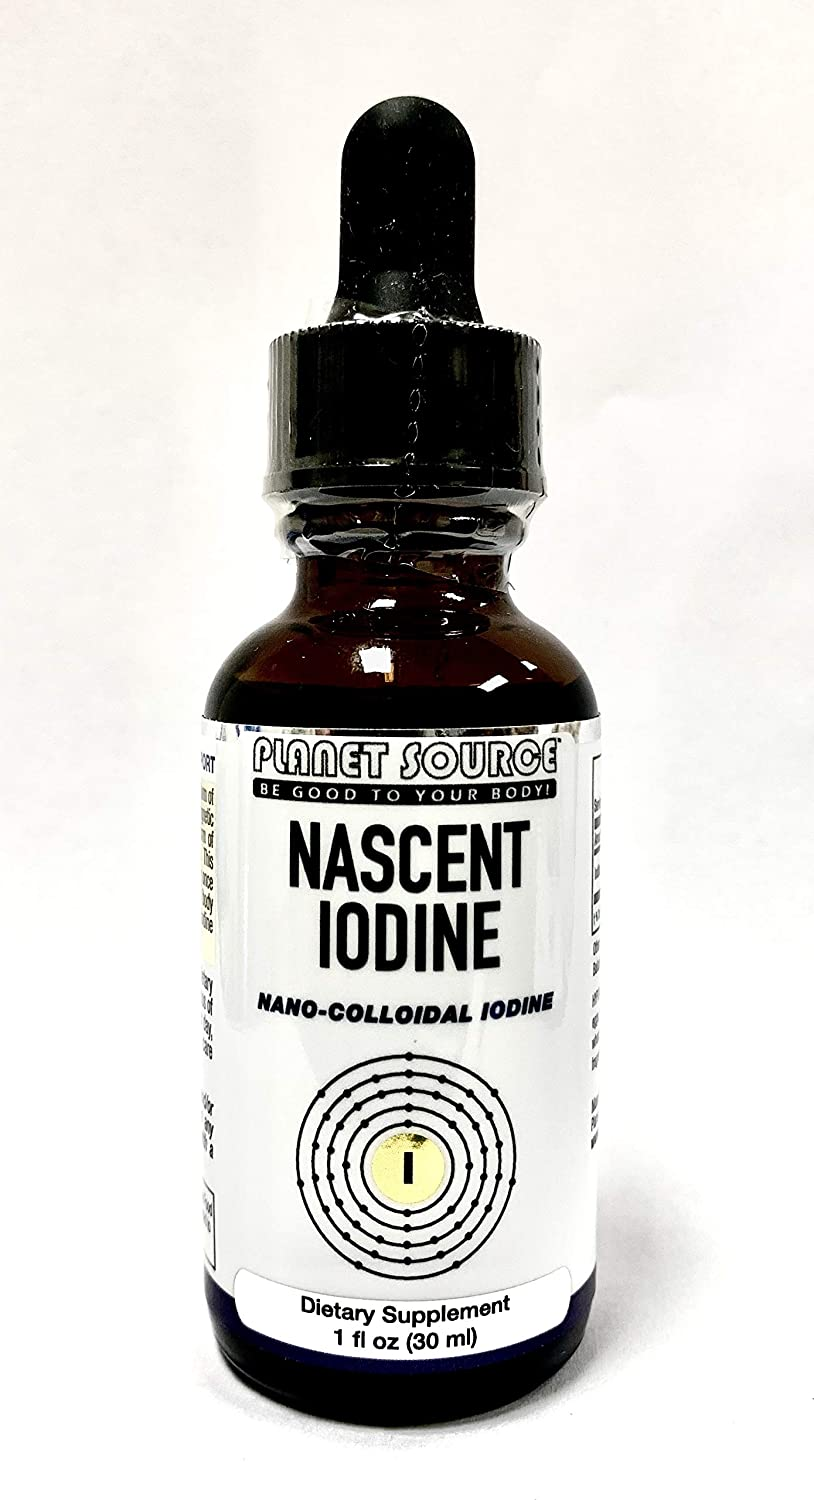 Nascent Iodine Supplement Vegan (Nano-colloidal Iodine) High Potency-Promotes Thyroid -Hormonal & Healthy Weight Support/Just 1 Drop per Day = 600 Servings